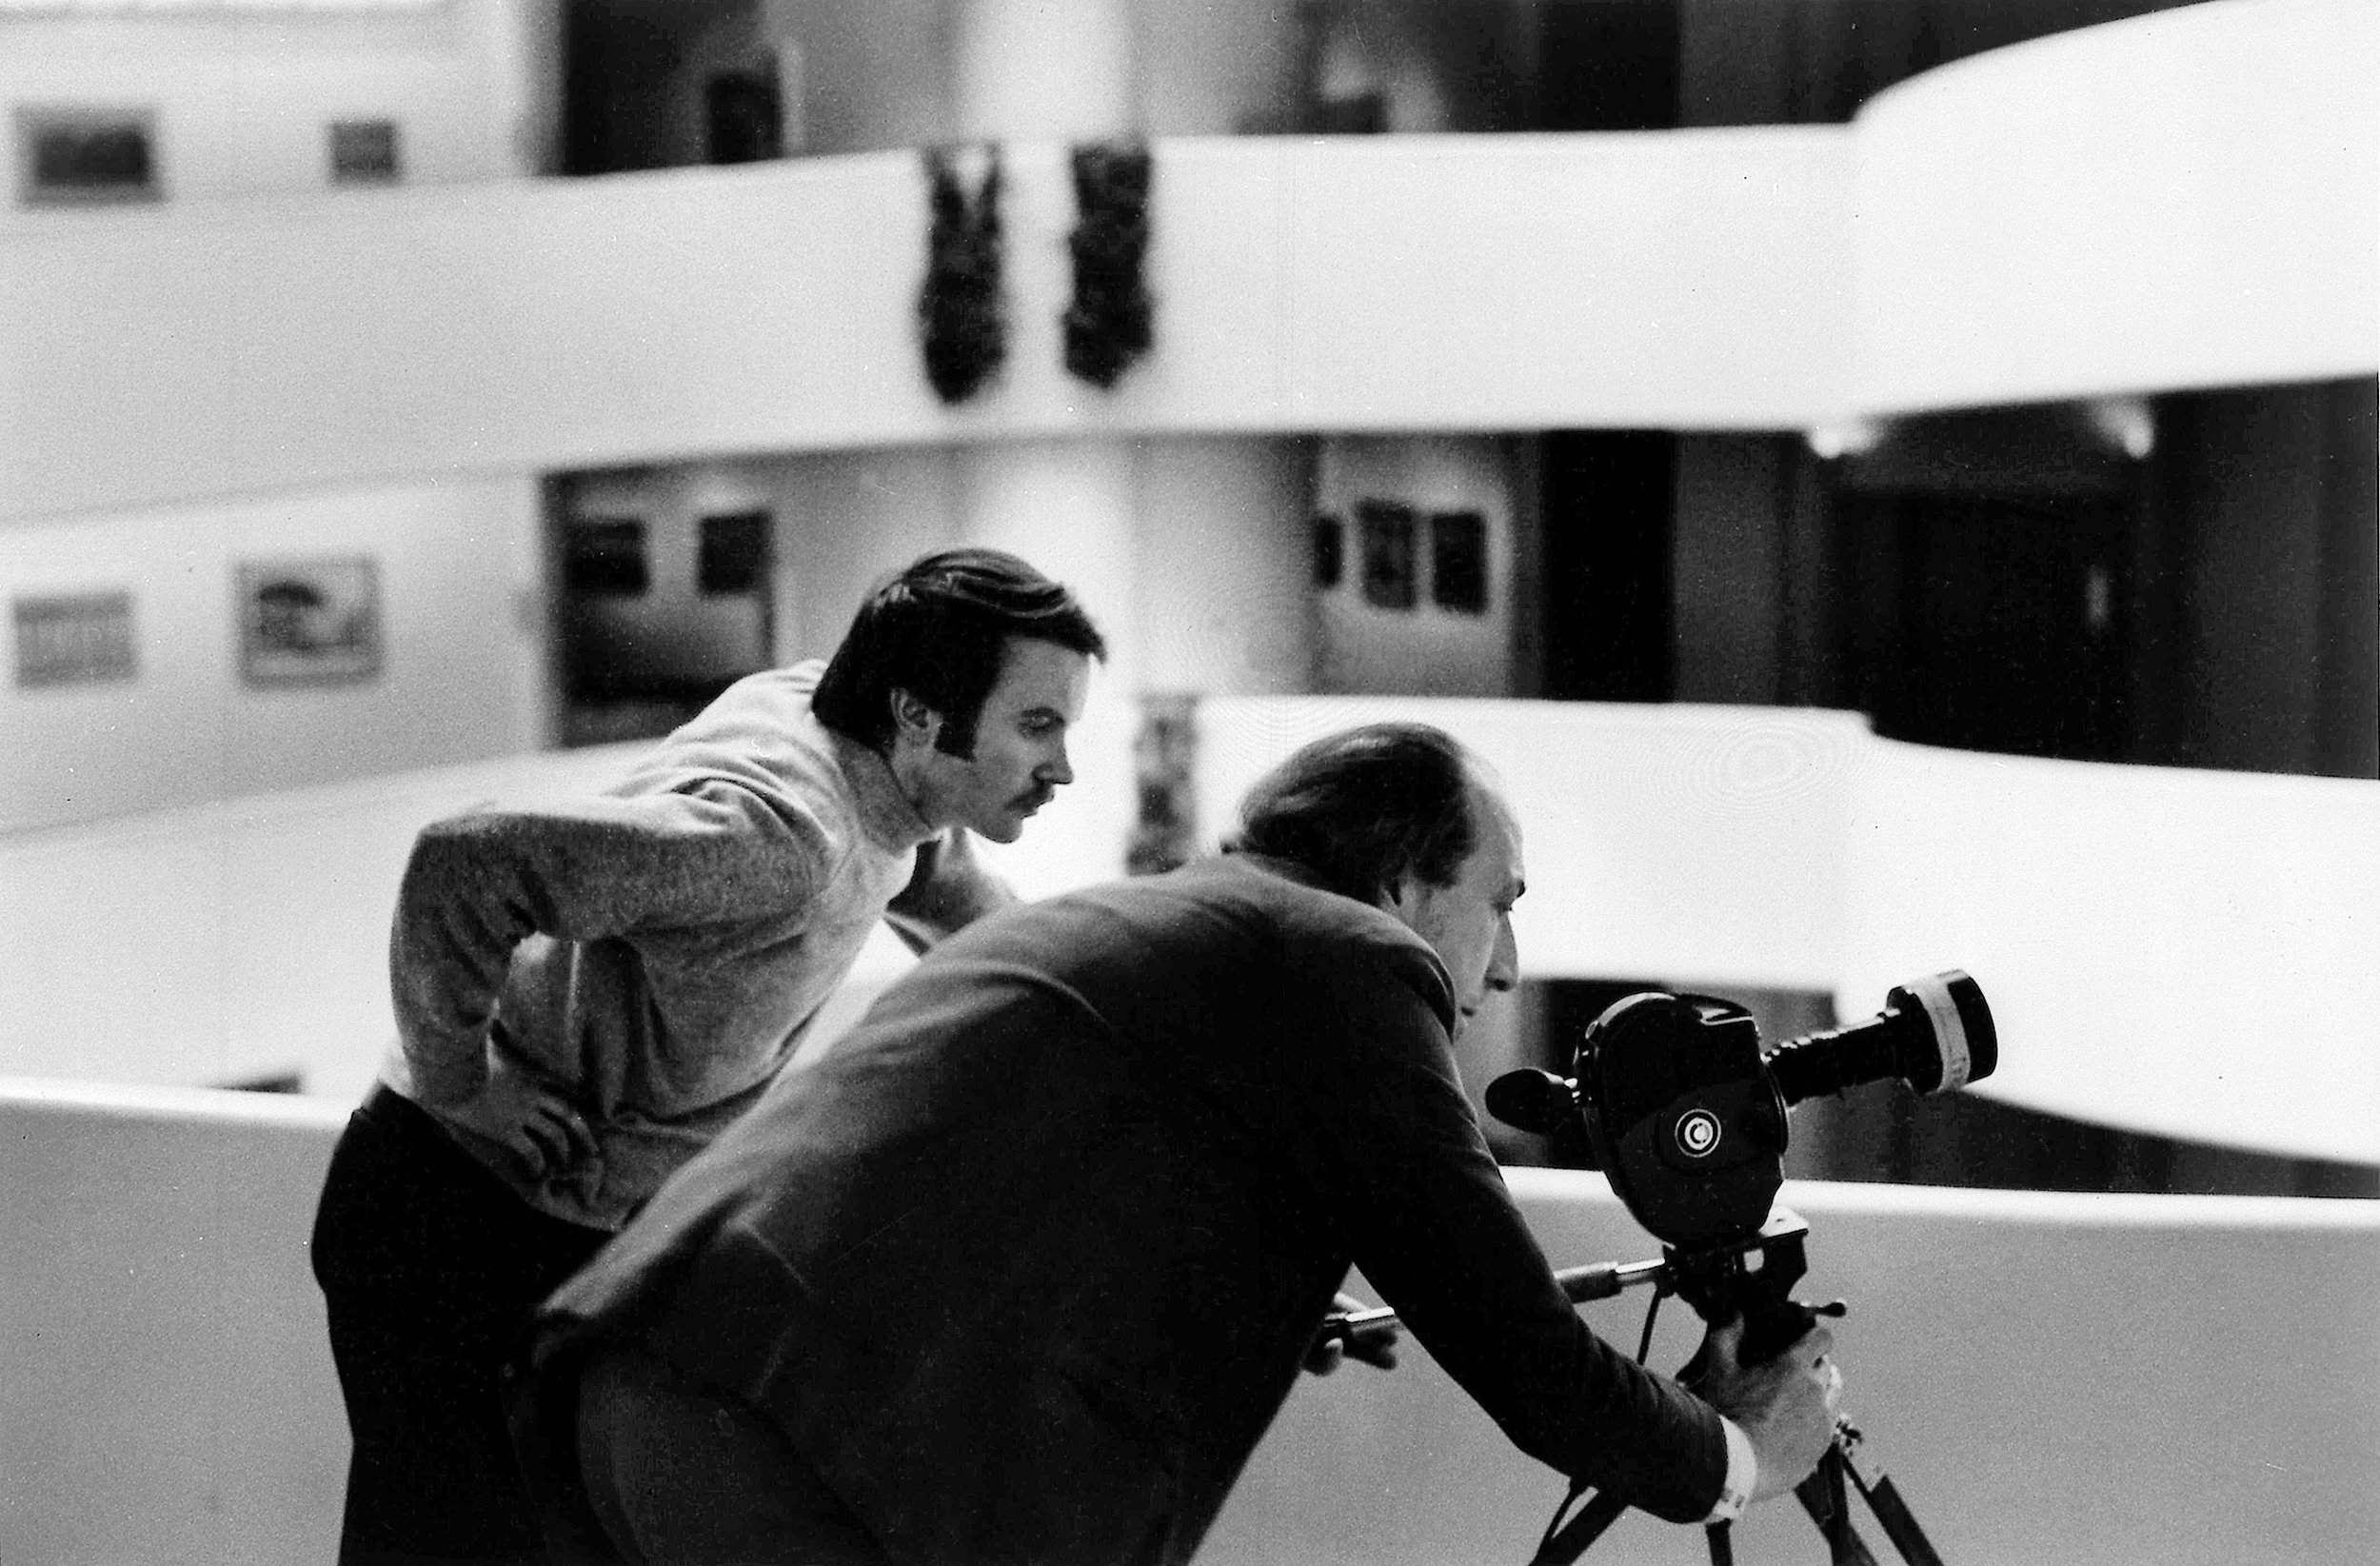 James Scott and Richard Hamilton filming at the Guggenheim Museum